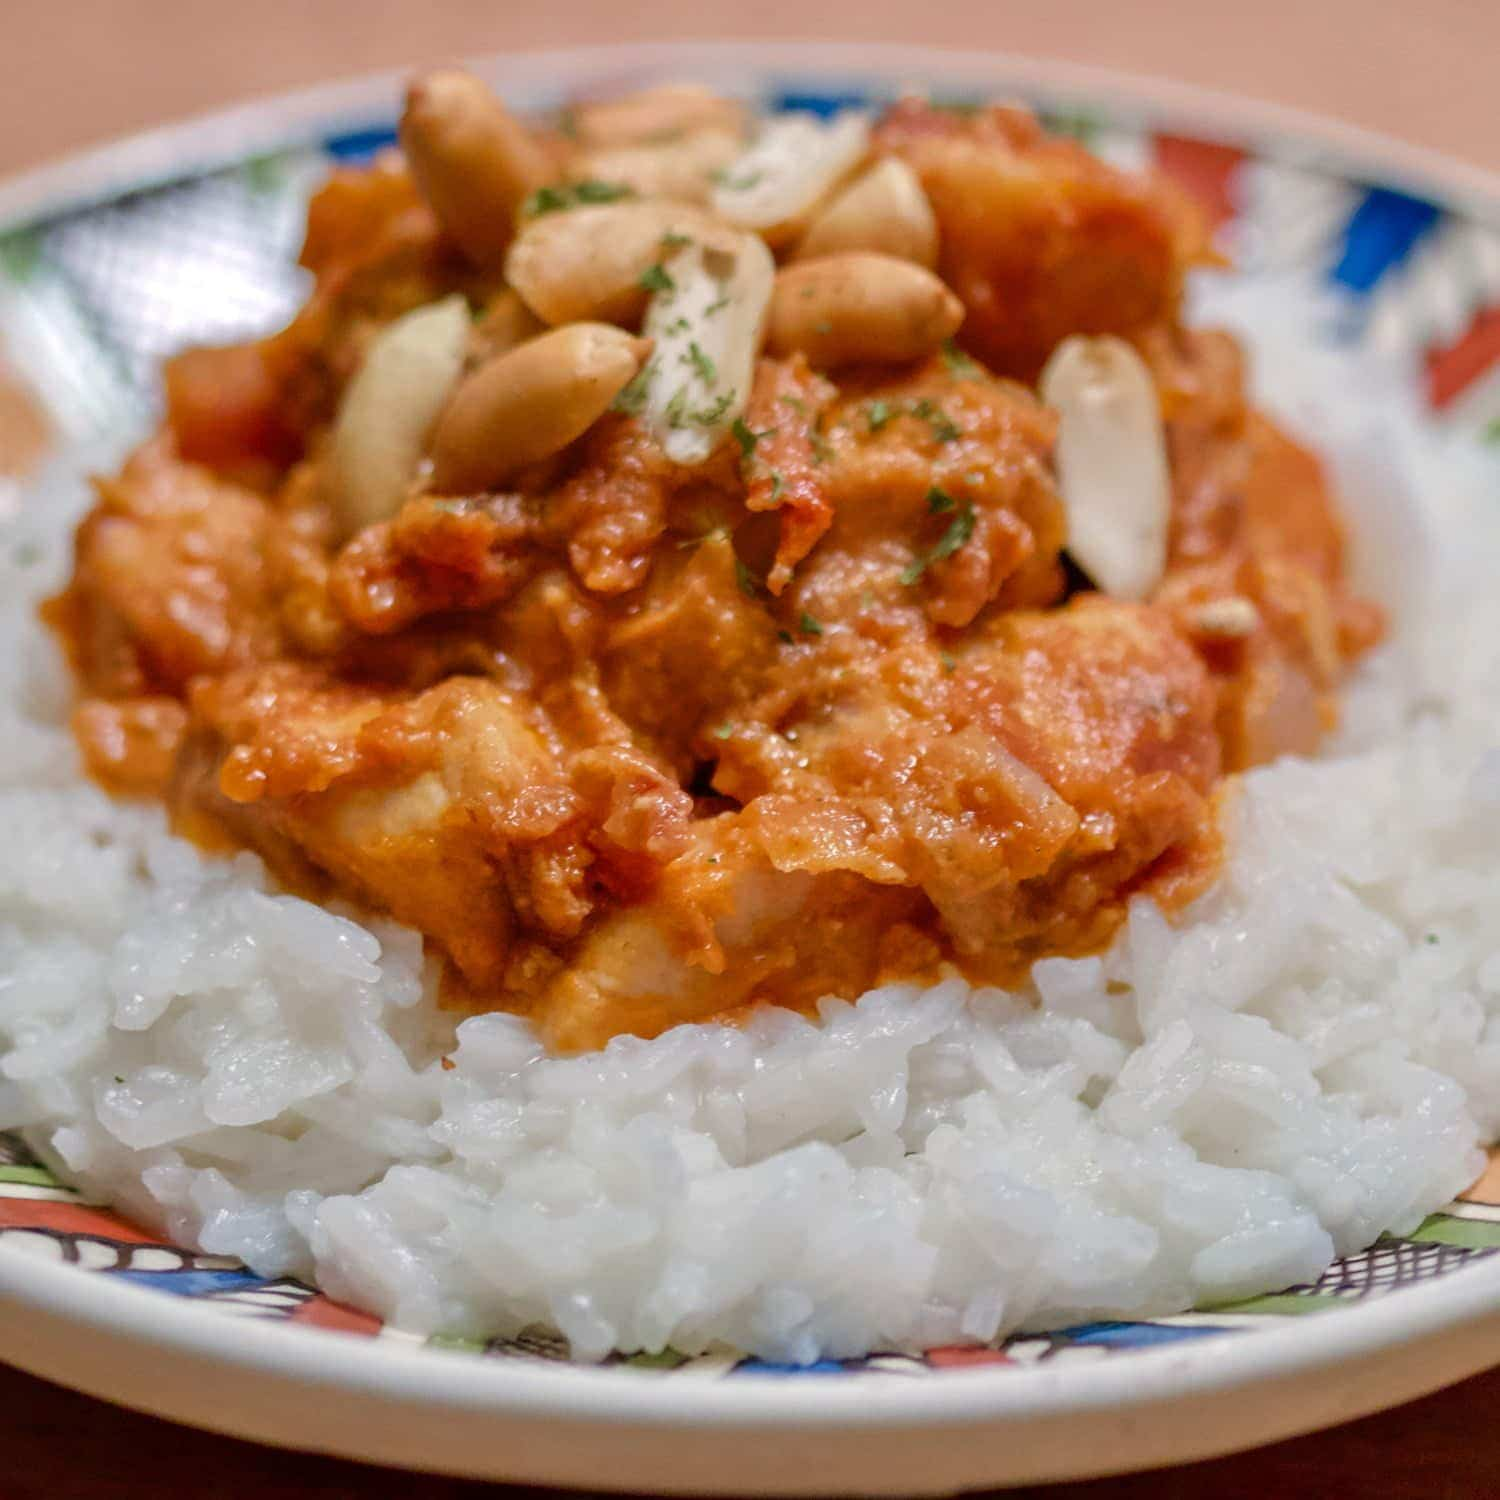 This easy peanut butter chicken recipe is inspired from the African cuisine. The recipe works with any kind of chicken. If you have only raw chicken, fry it first. If you have left over chicken, roasted or just cooked, works perfect too as it will save some time. It is an excellent dish for a quick dinner.